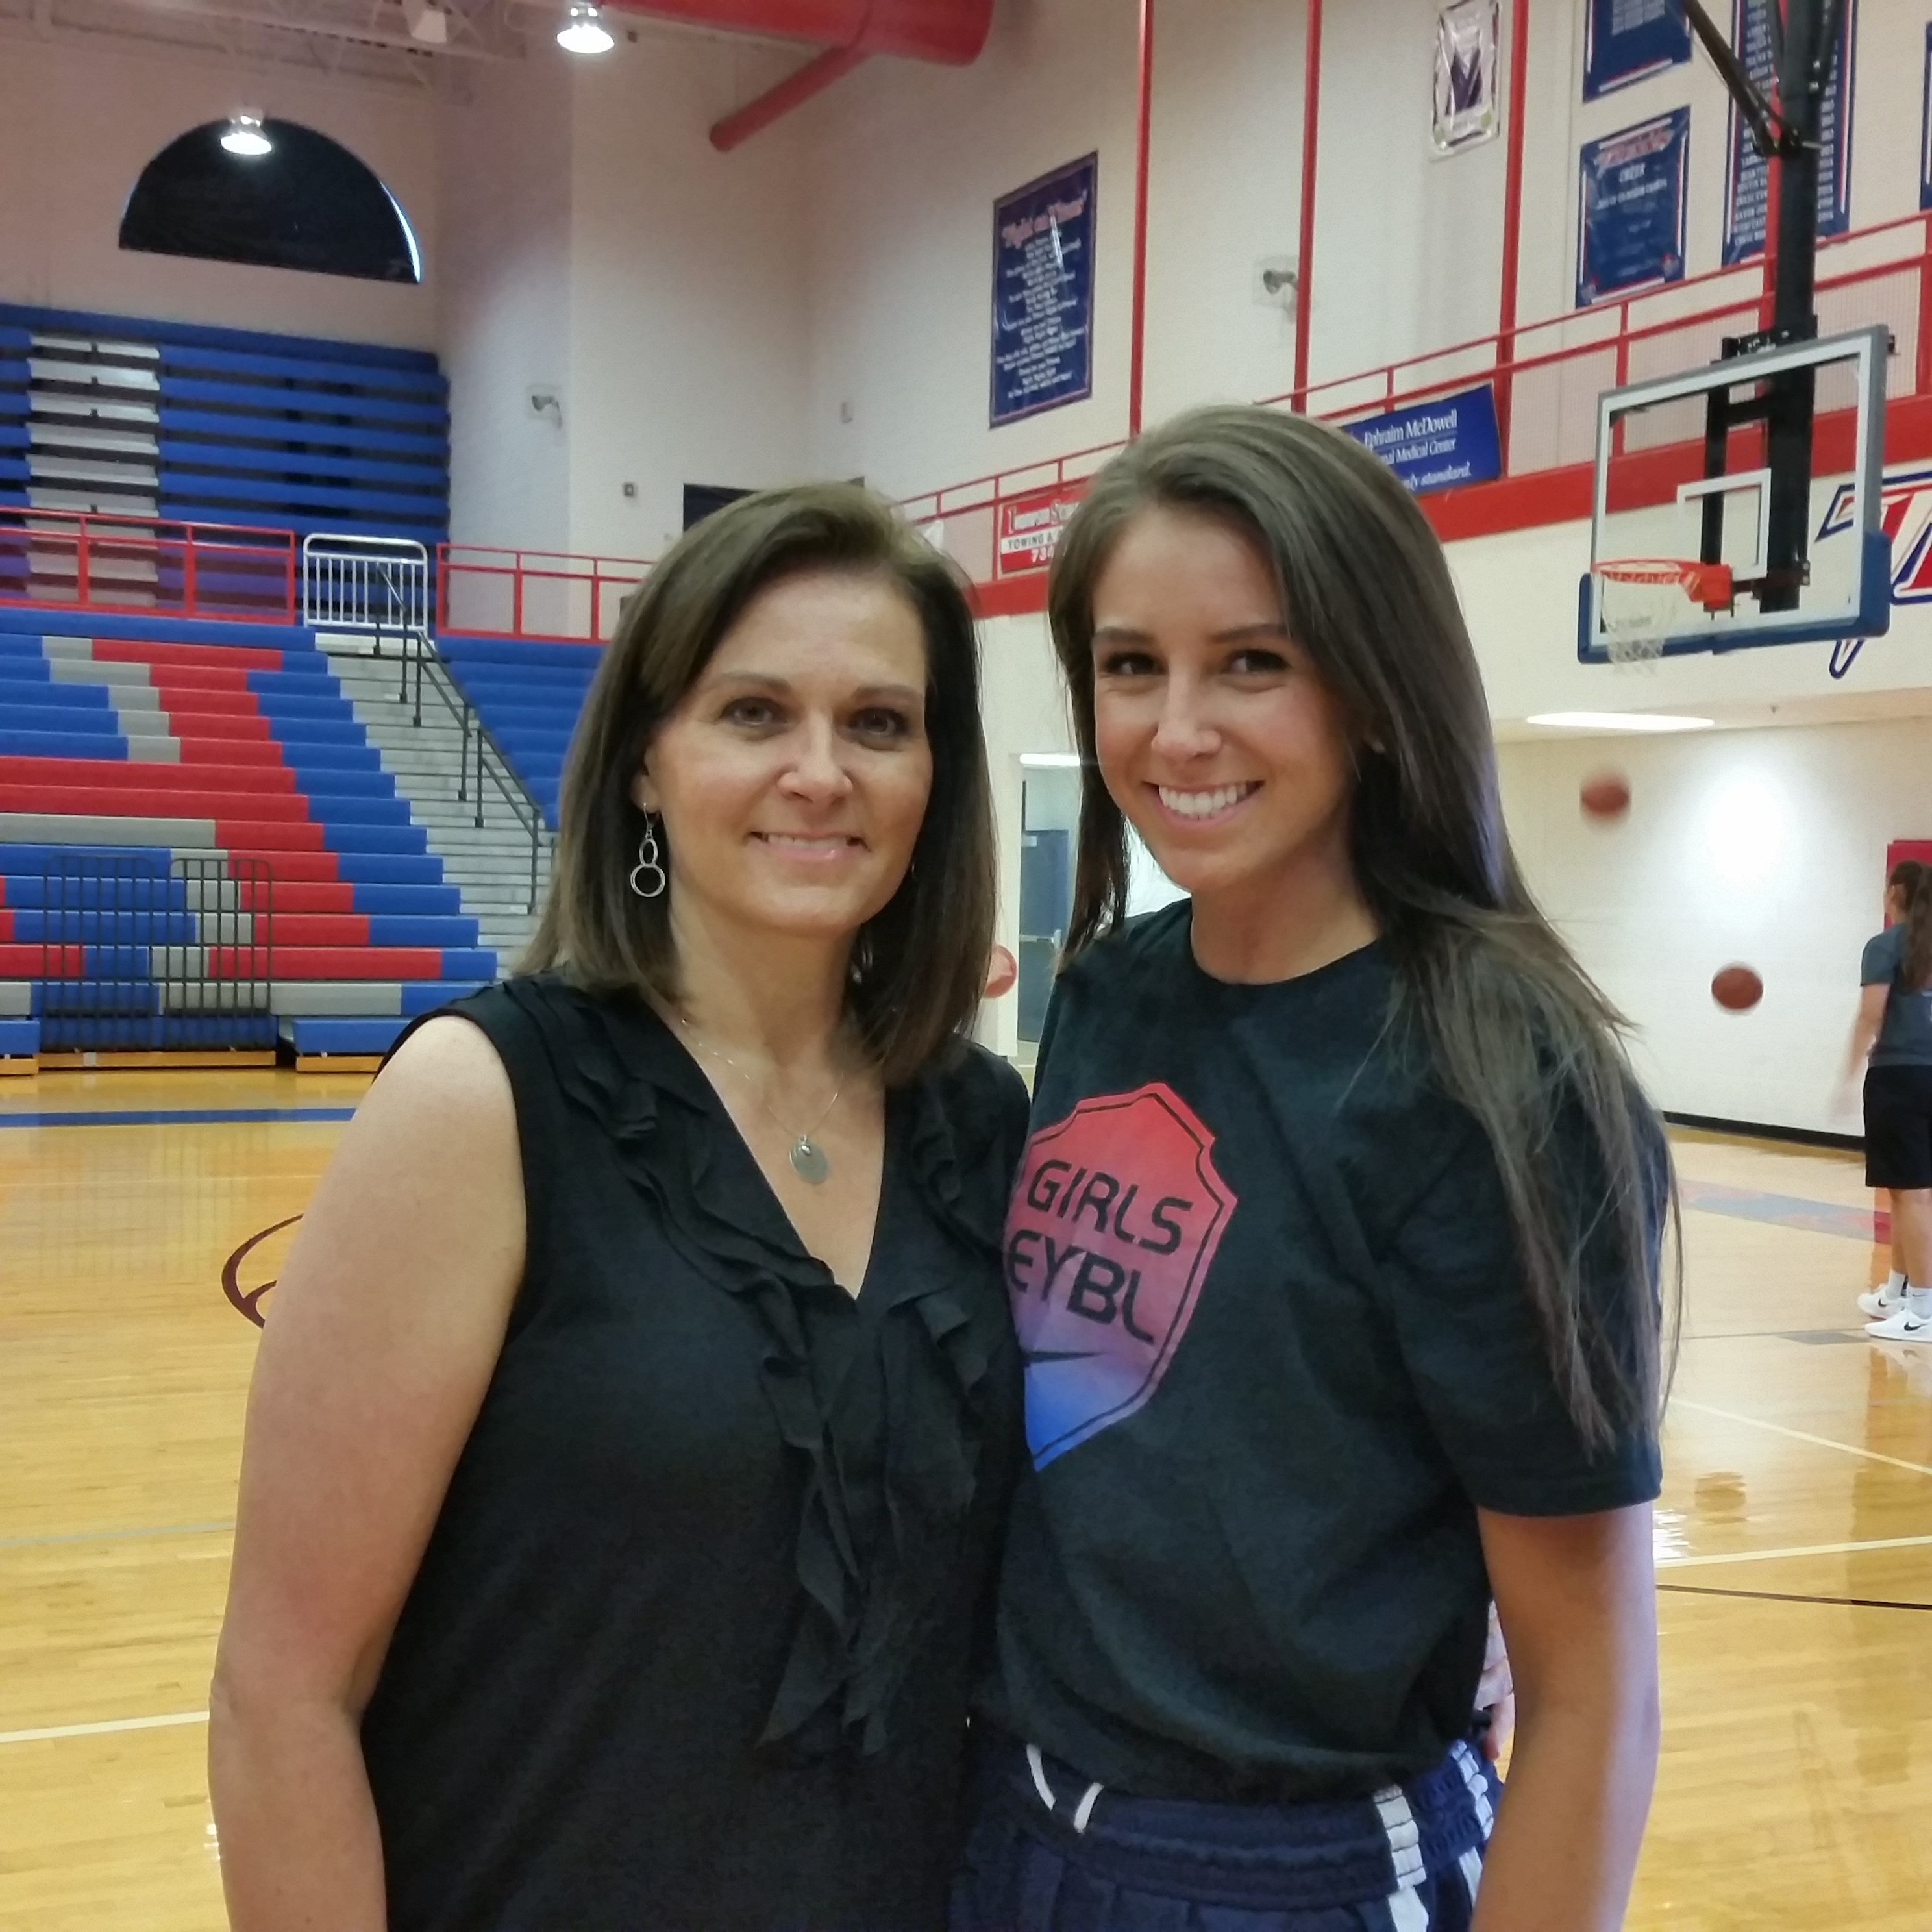 Blair Green and her mother, Debbie Green. (Larry Vaught Photo)